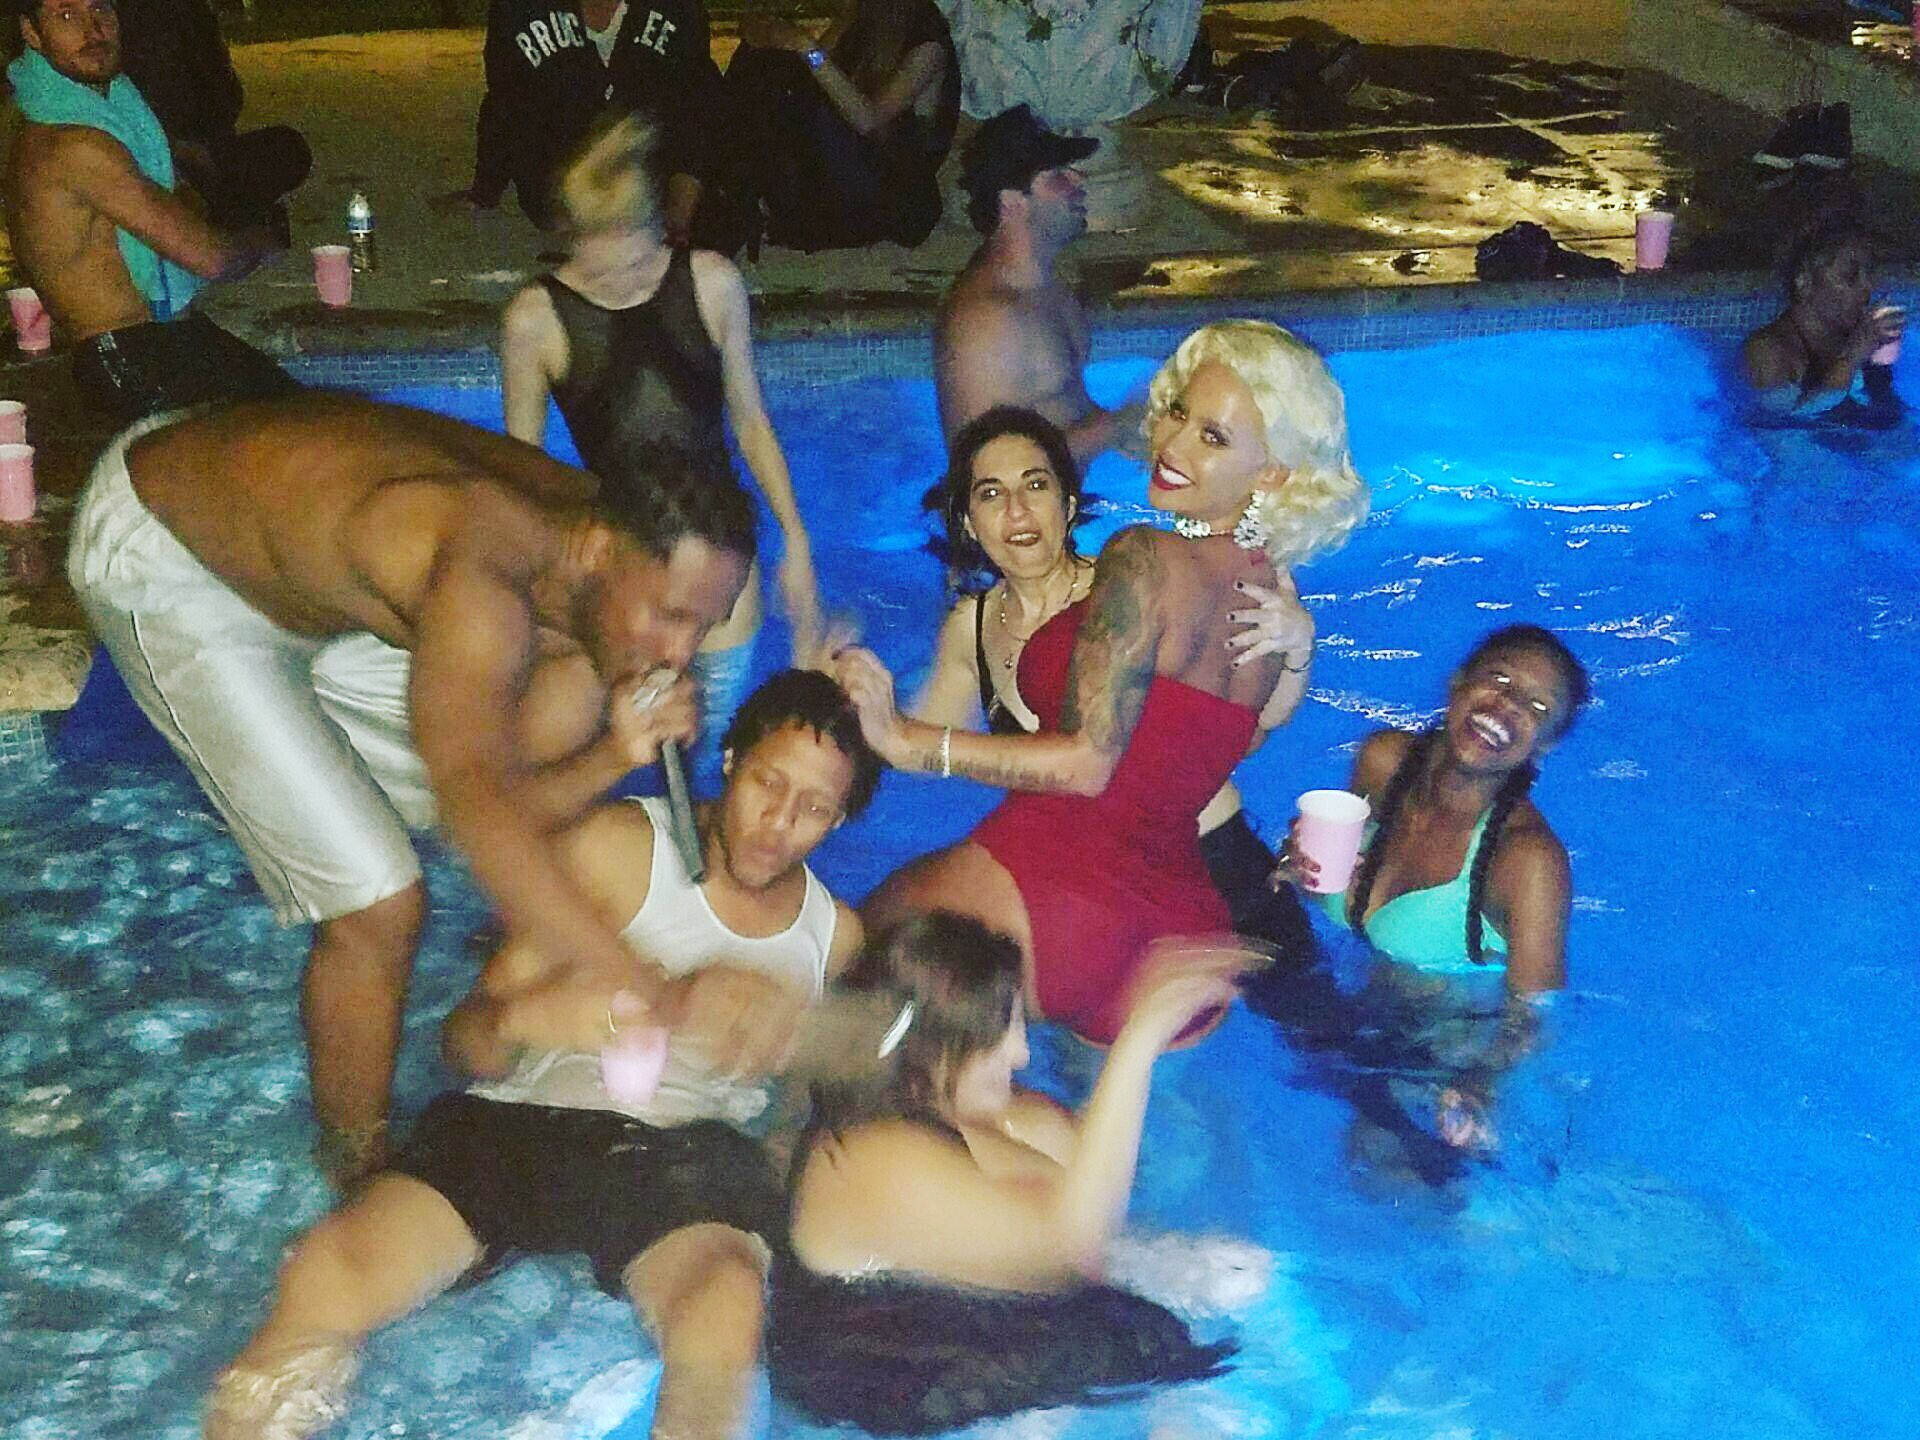 RT @DaRealAmberRose: My Private Pool Birthday party last night was soooo much fun just my close friends and family #materialgirl �� https://…